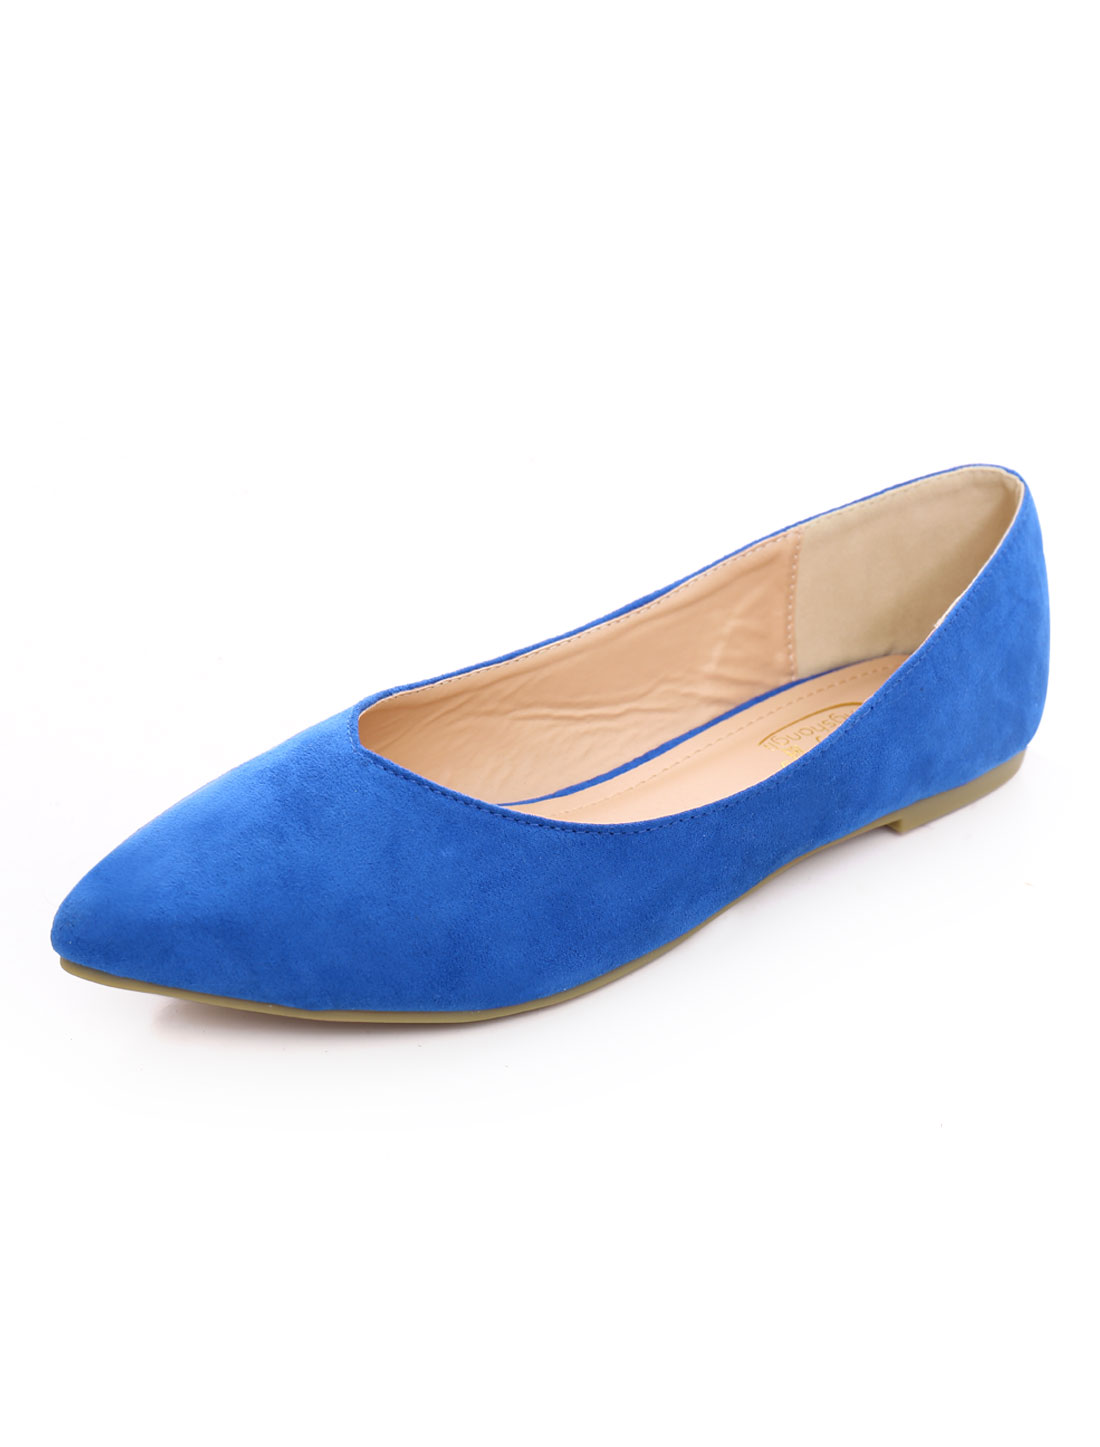 Lady Faux Suede Pointed Comfort Slip On Shoes Blue US 9-9.5